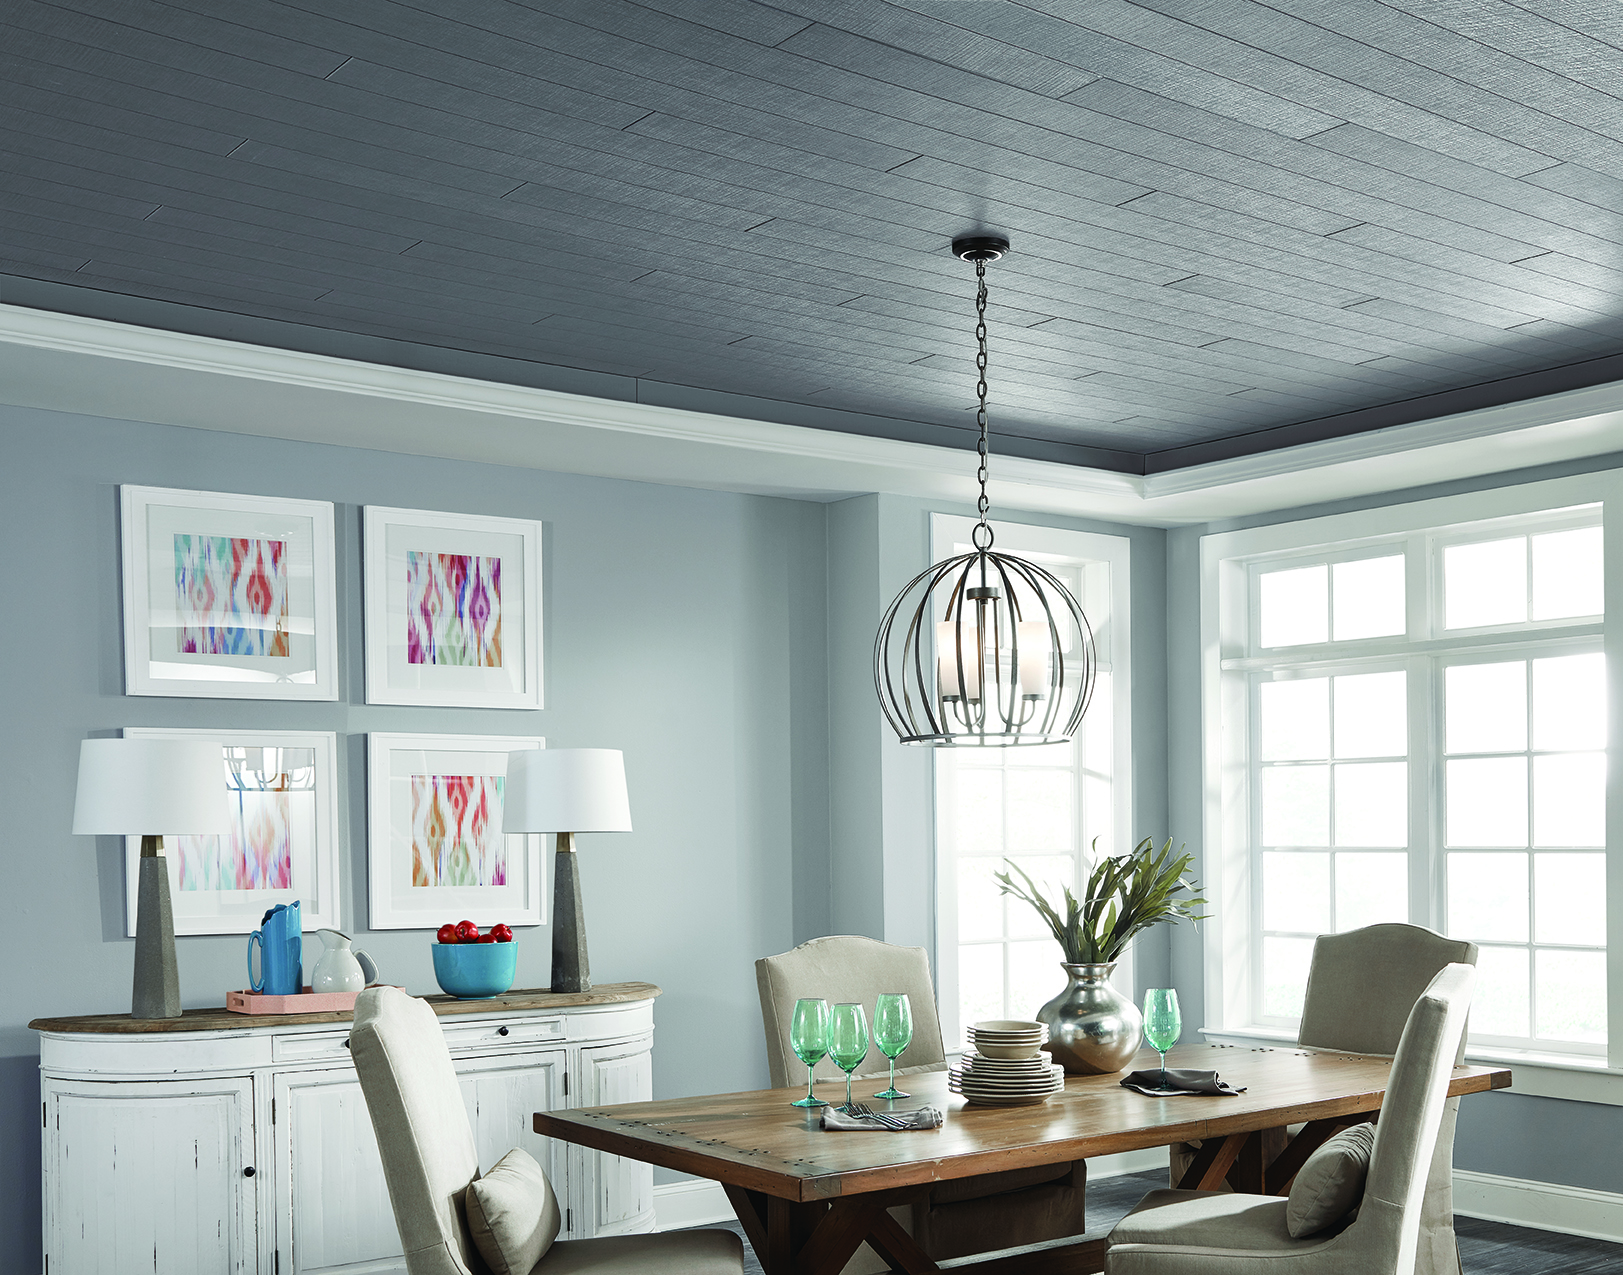 Four New Ceiling Plank Finishes For WoodHaven By Armstrong Ceilings Builder Magazine